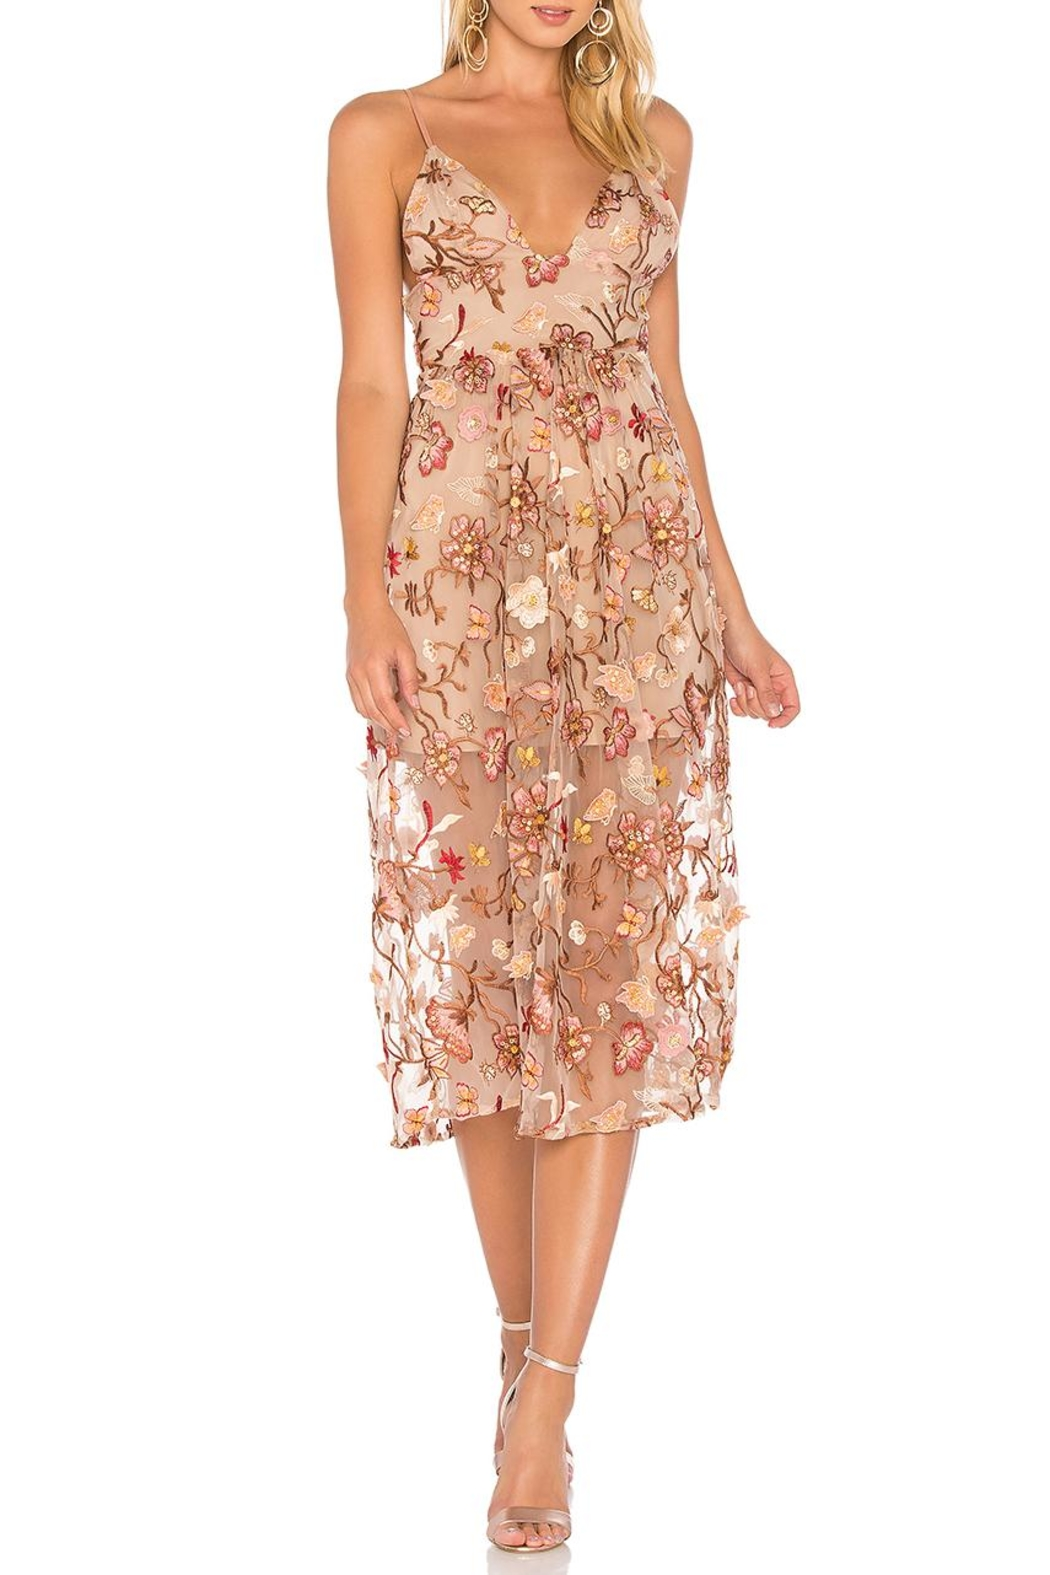 FOR LOVE & LEMONS Botanic Midi Dress - Main Image